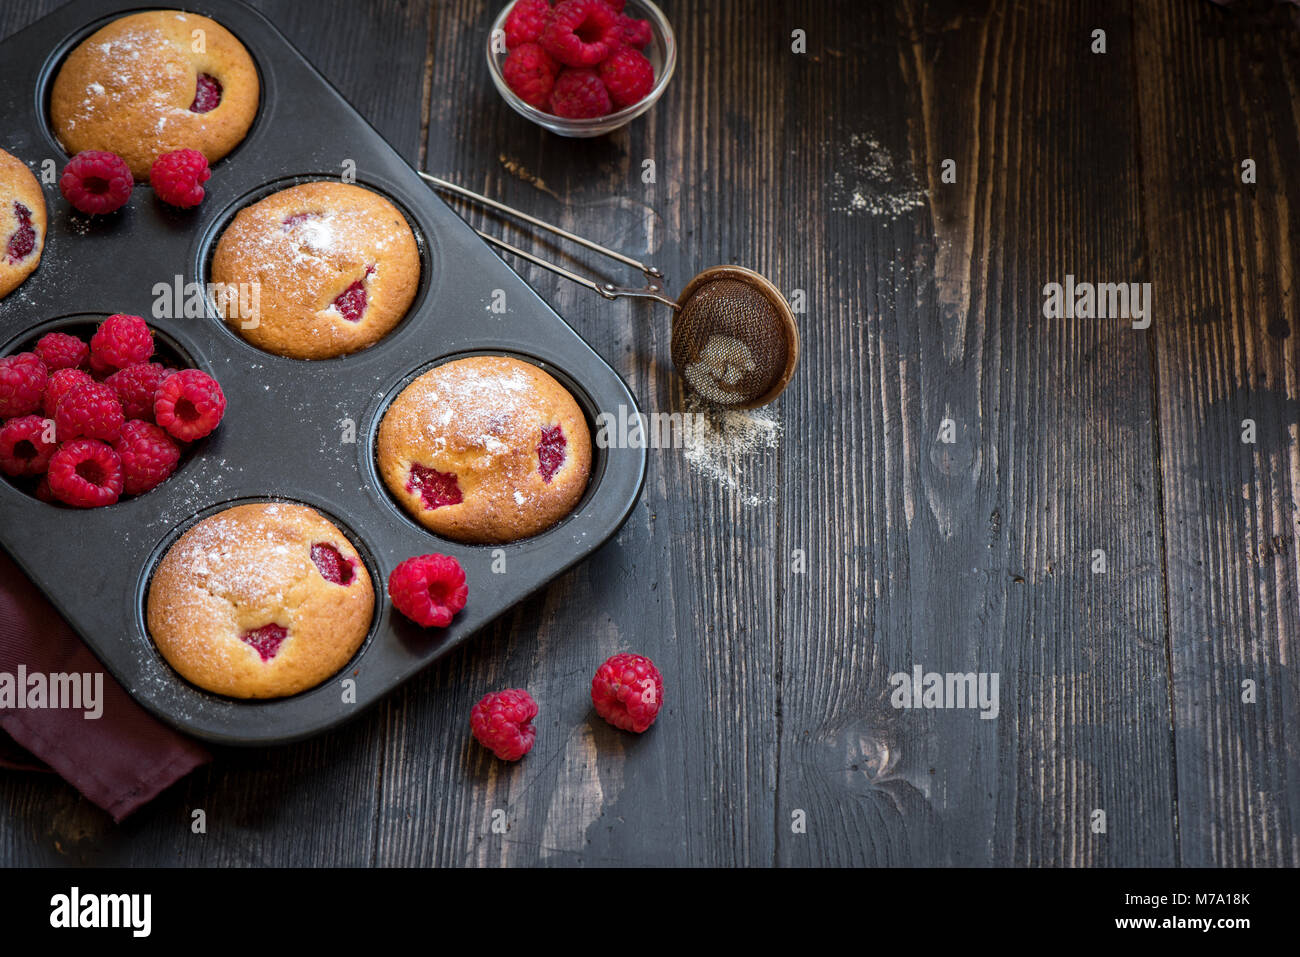 Homemade Raspberry Muffins. Healthy Berry Muffins for Breakfast. - Stock Image